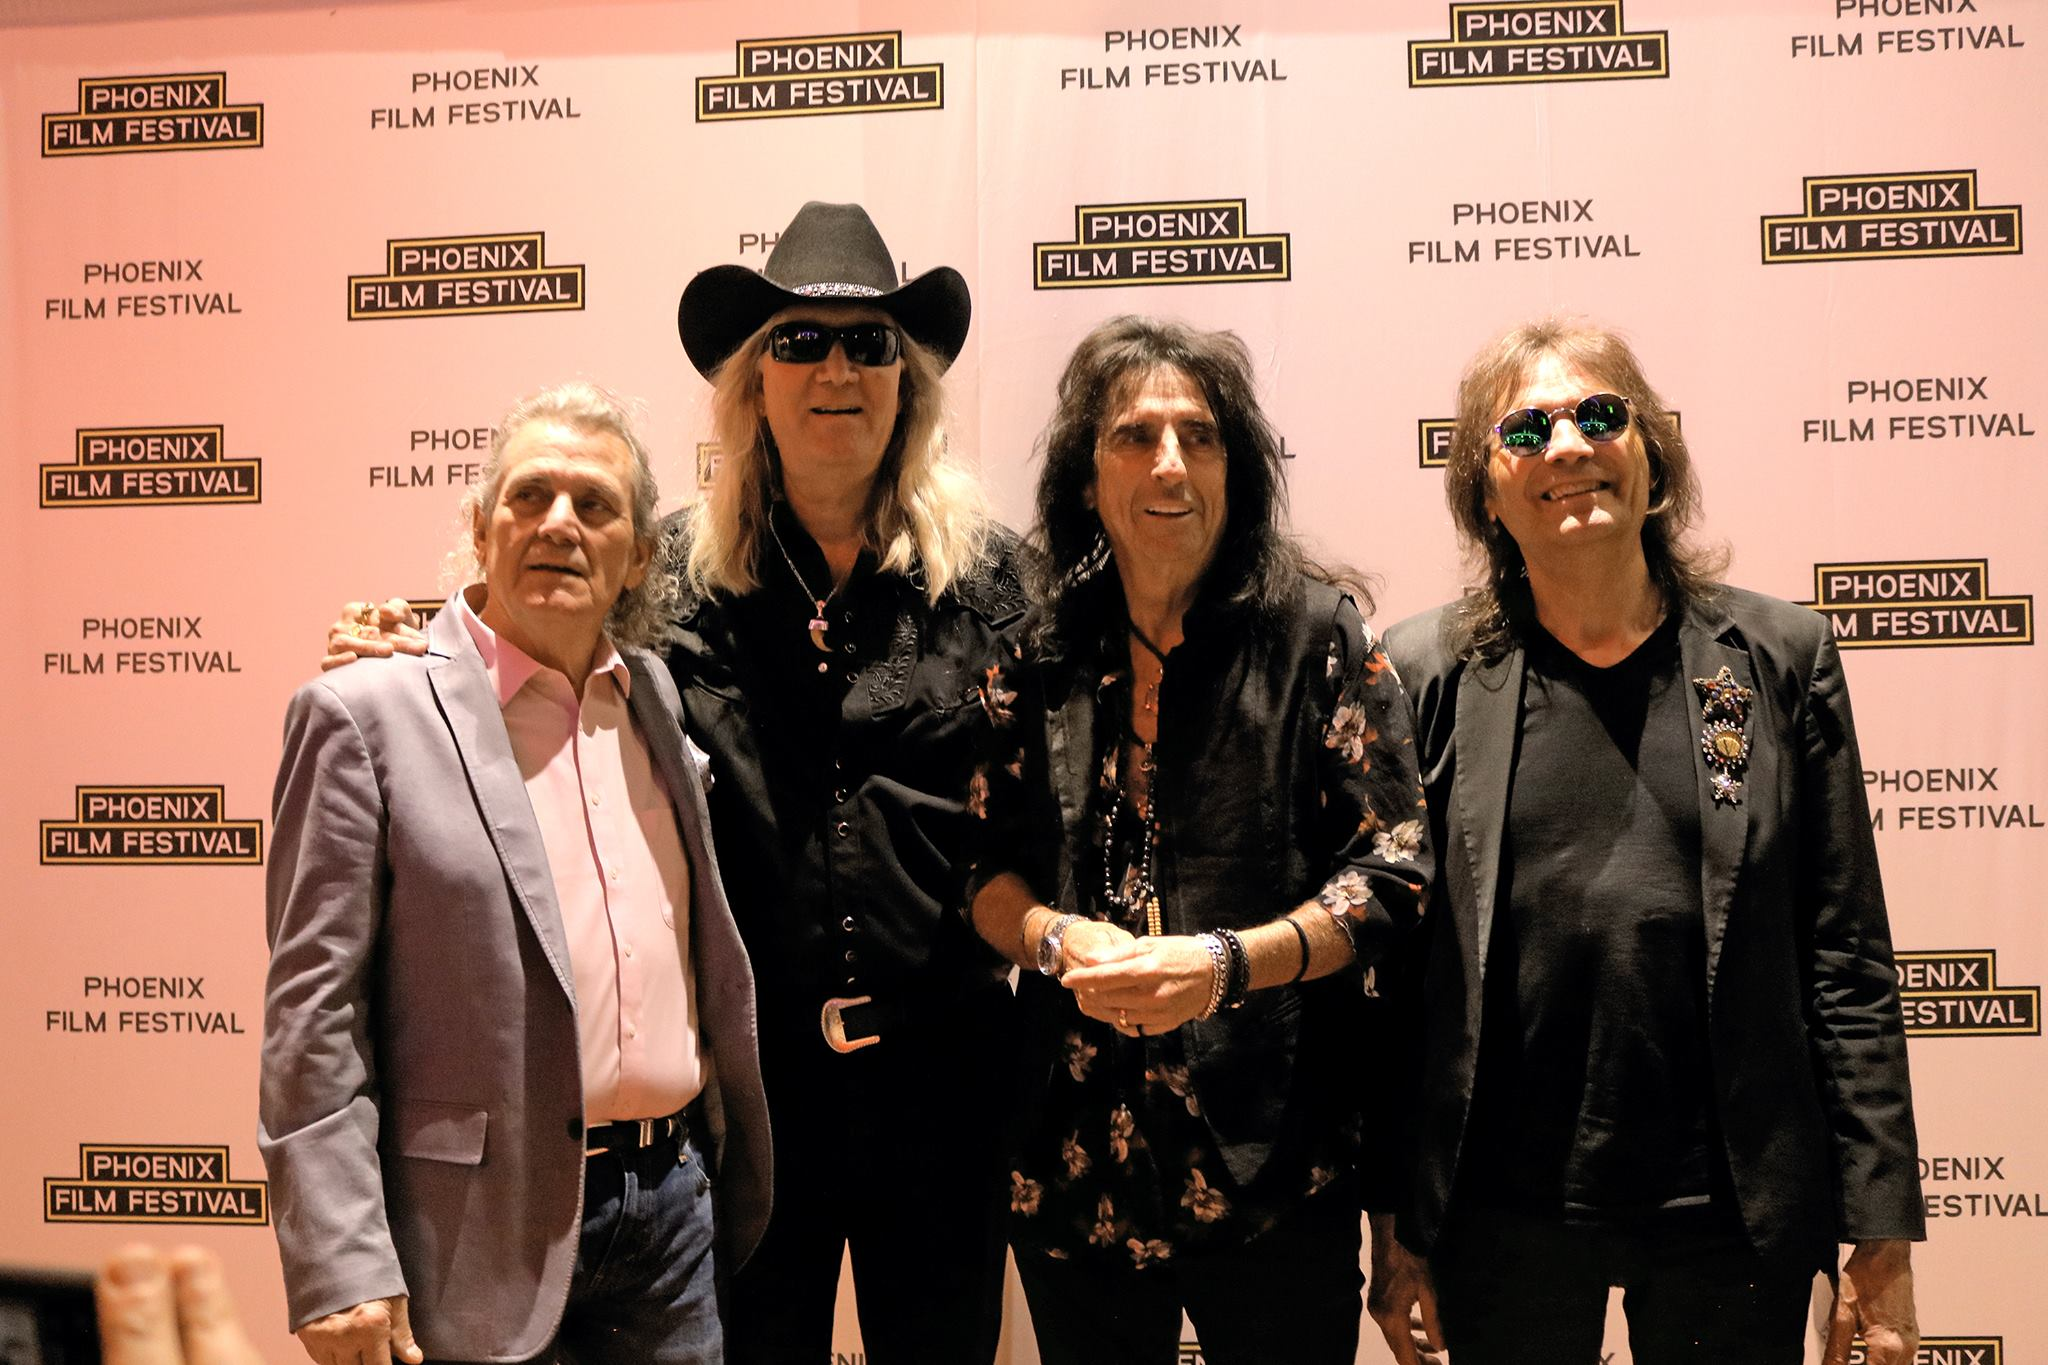 Michael Bruce, Neal Smith, Alice Cooper, and Dennis Dunaway on the Phoenix Film Festival red carpet for Live from the Astroturf, Alice Cooper. Picture by Julia Arrgh.